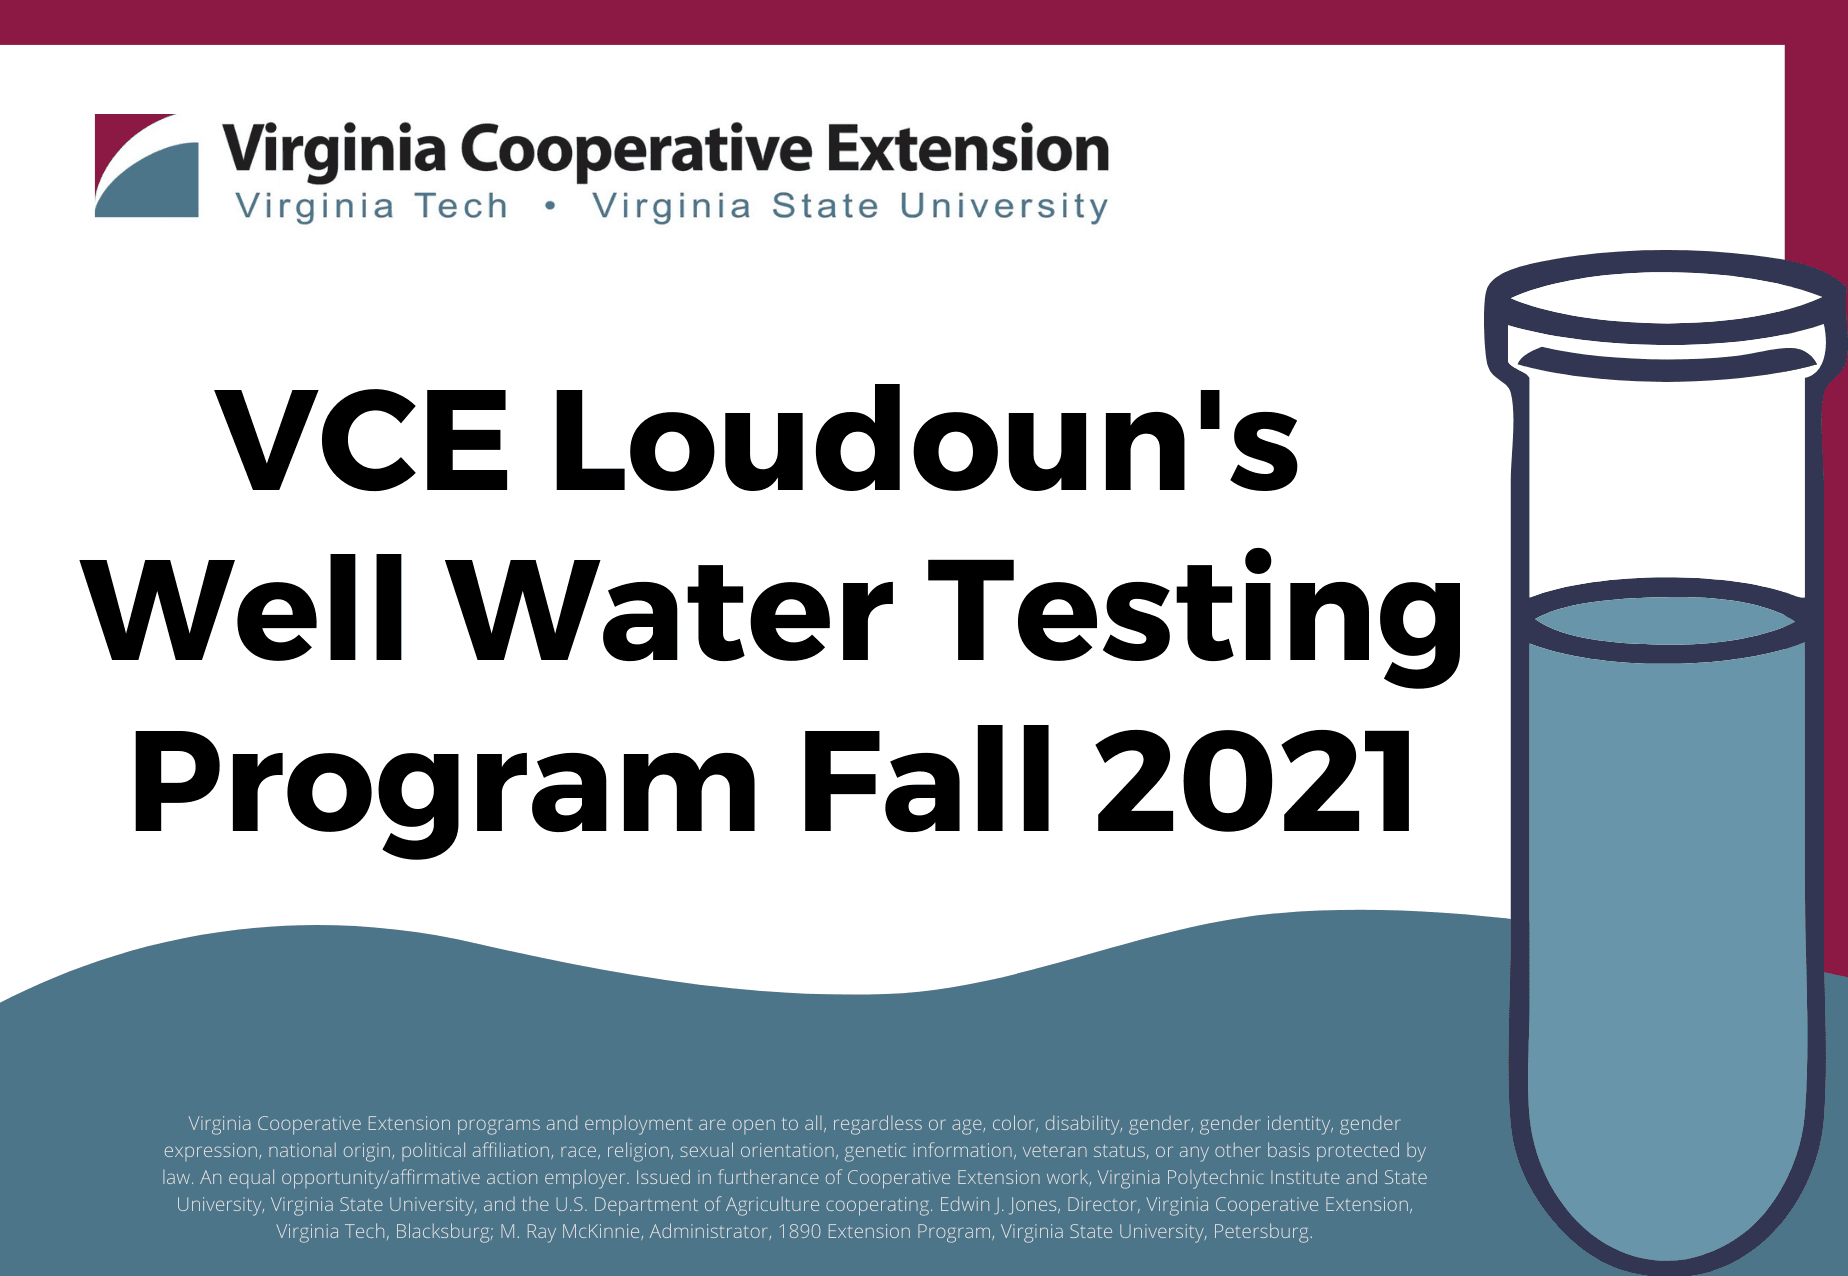 Well Water Testing Program Fall 2021